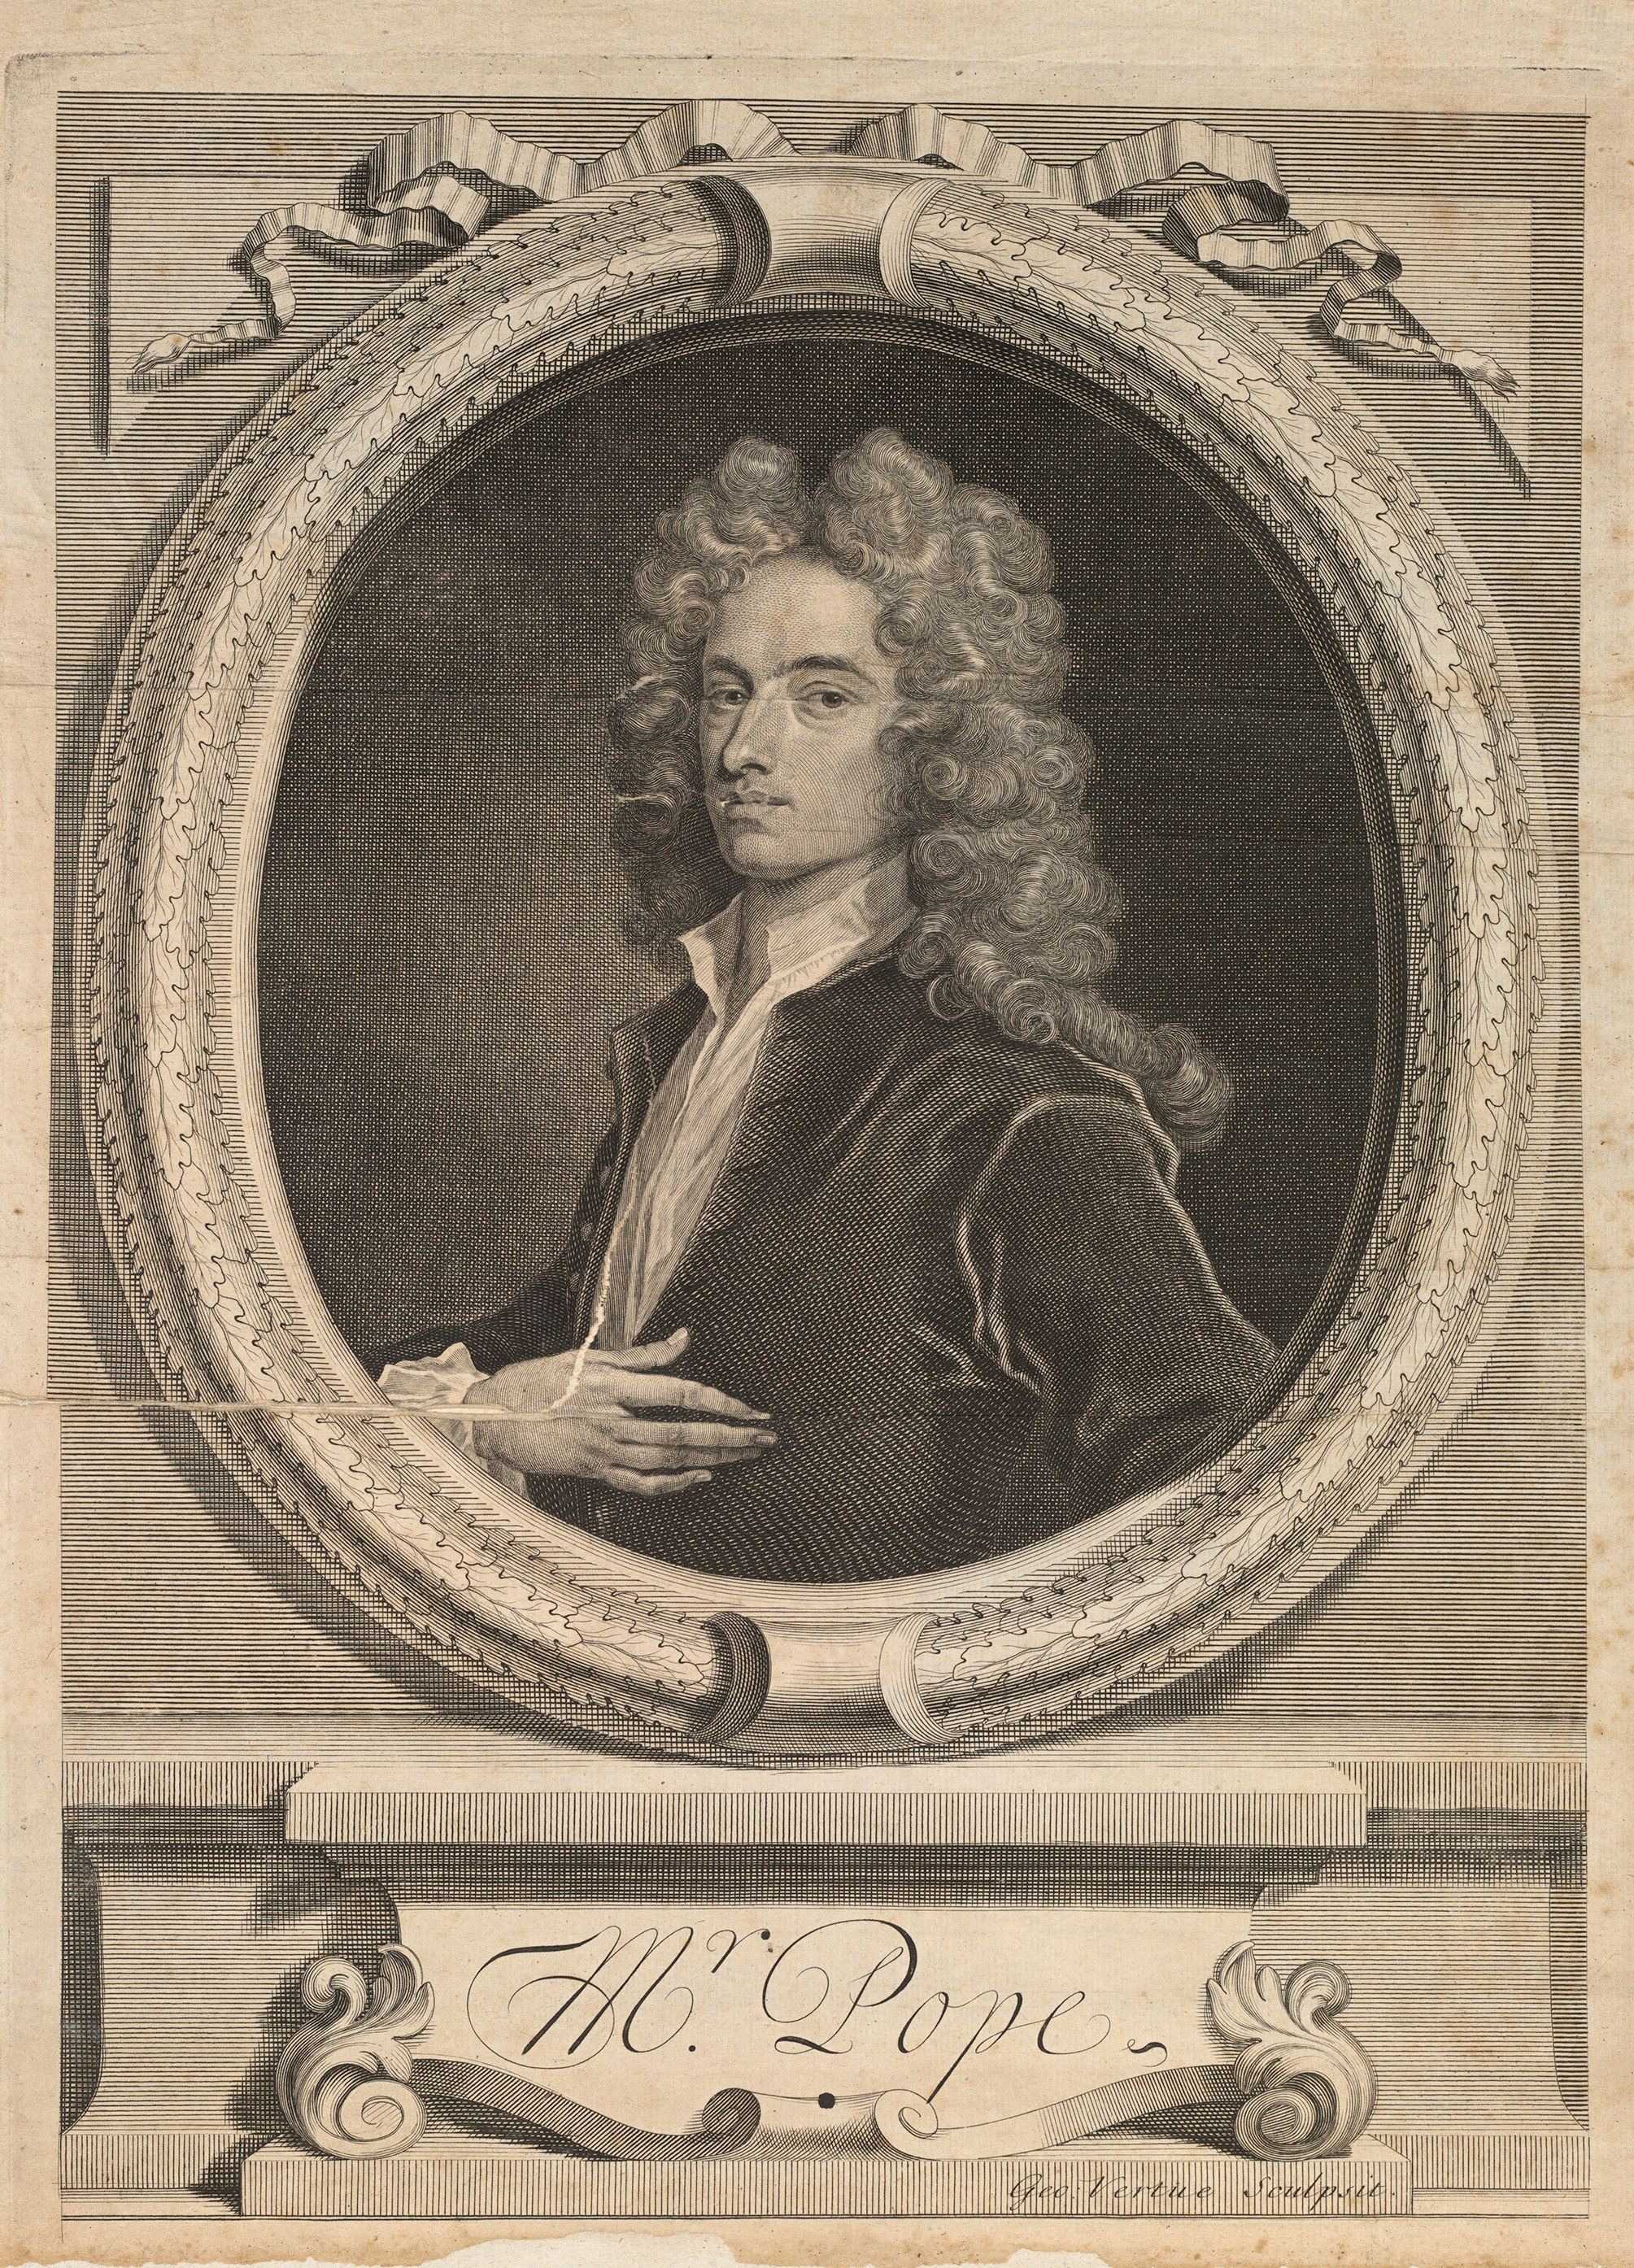 NB.91.18, frontispiece, Alexander Pope's Works, 1717